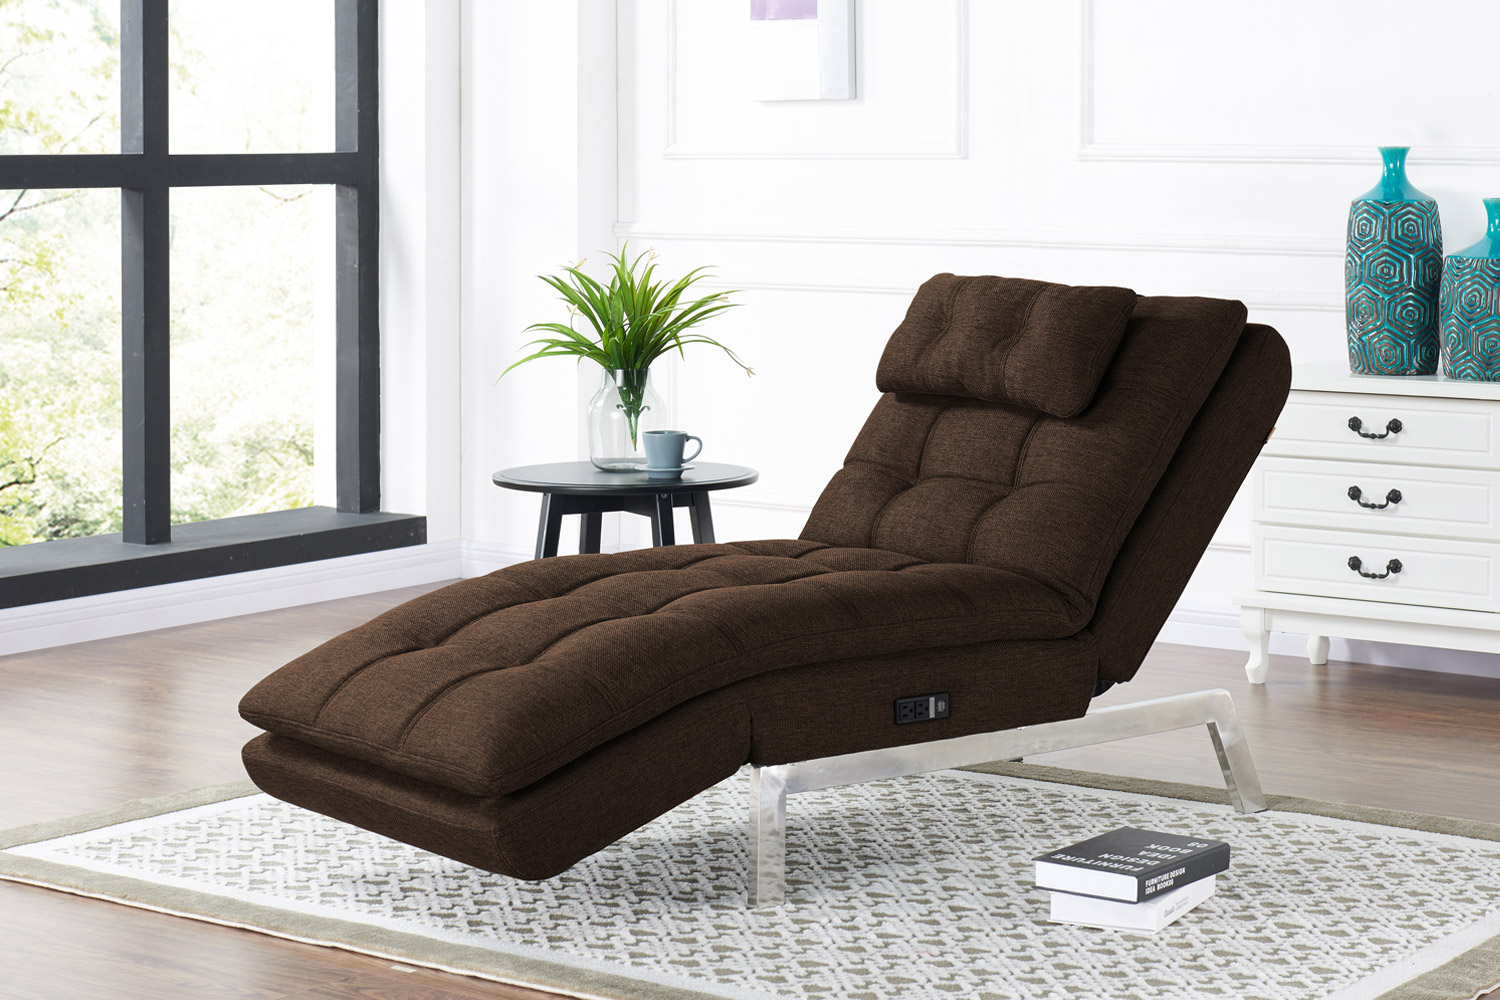 Apollo Chaise Lounger Sofa Bed